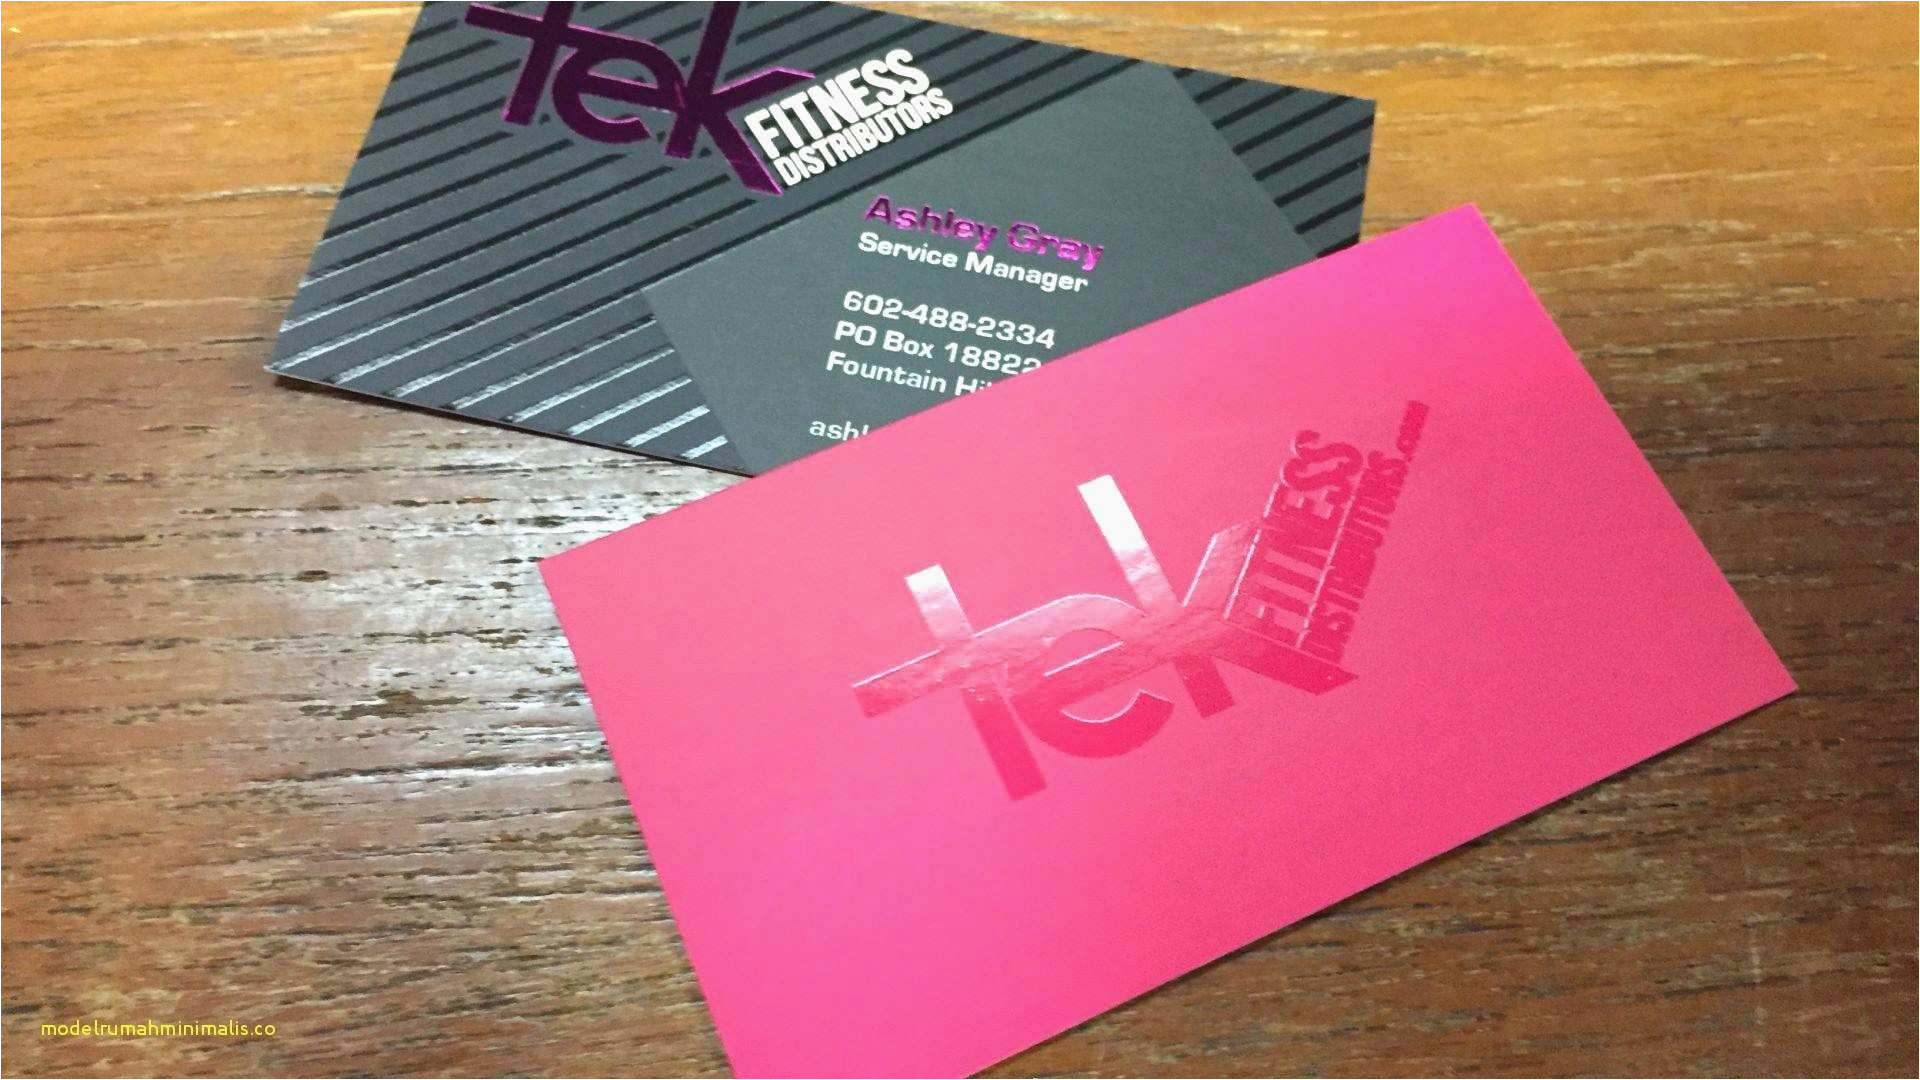 Elit Templates Sticker Luxury Office Depot Label Templates for Word Kinoweb org